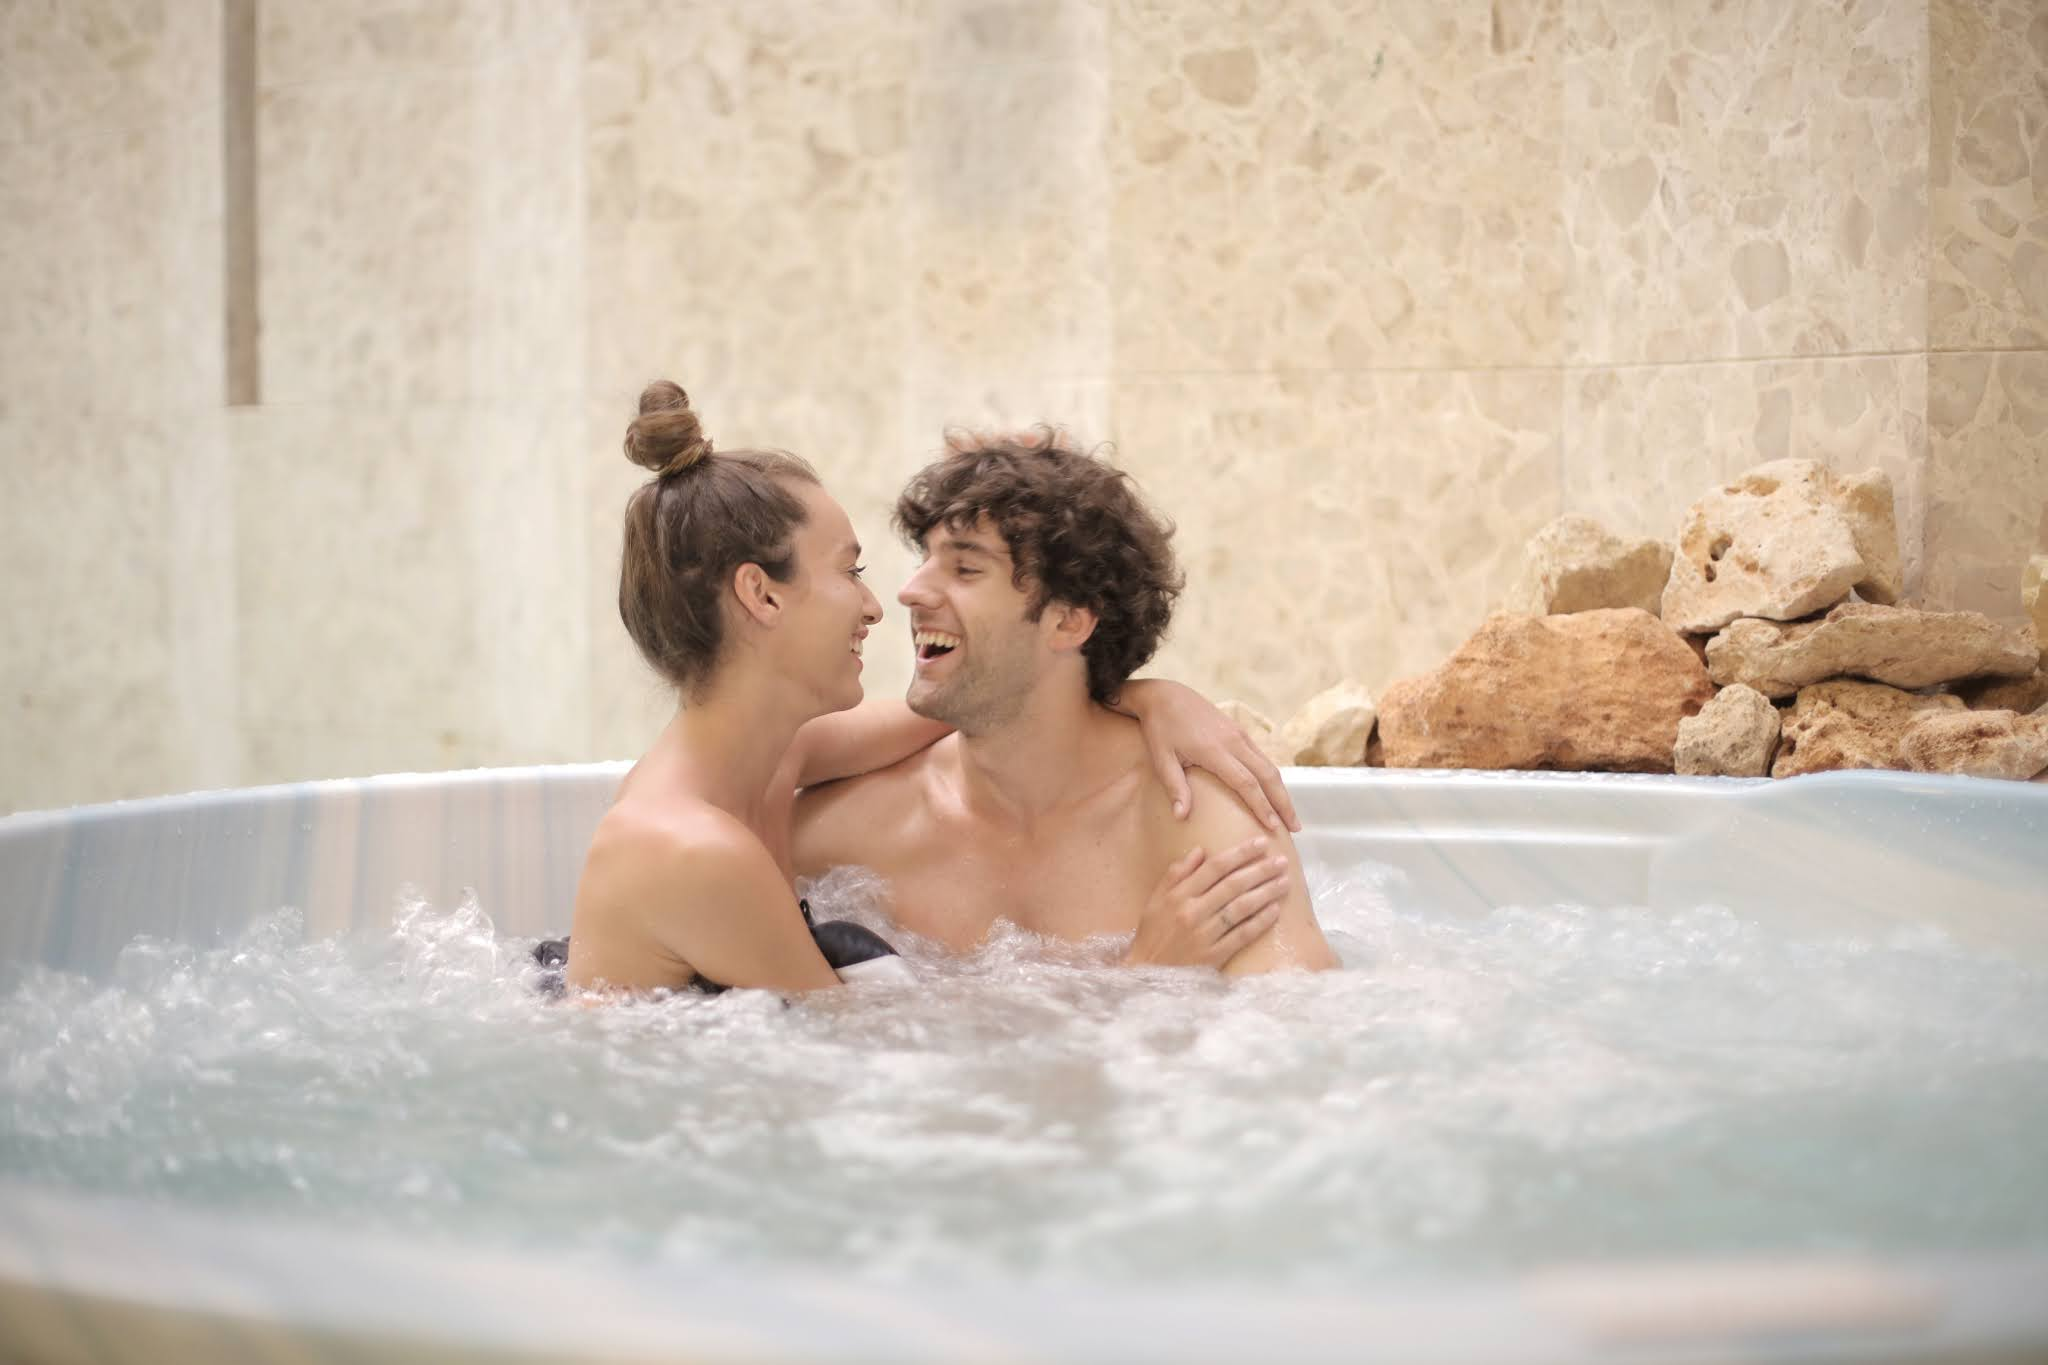 Romantic Getaways in New Jersey: Hot Tub Edition